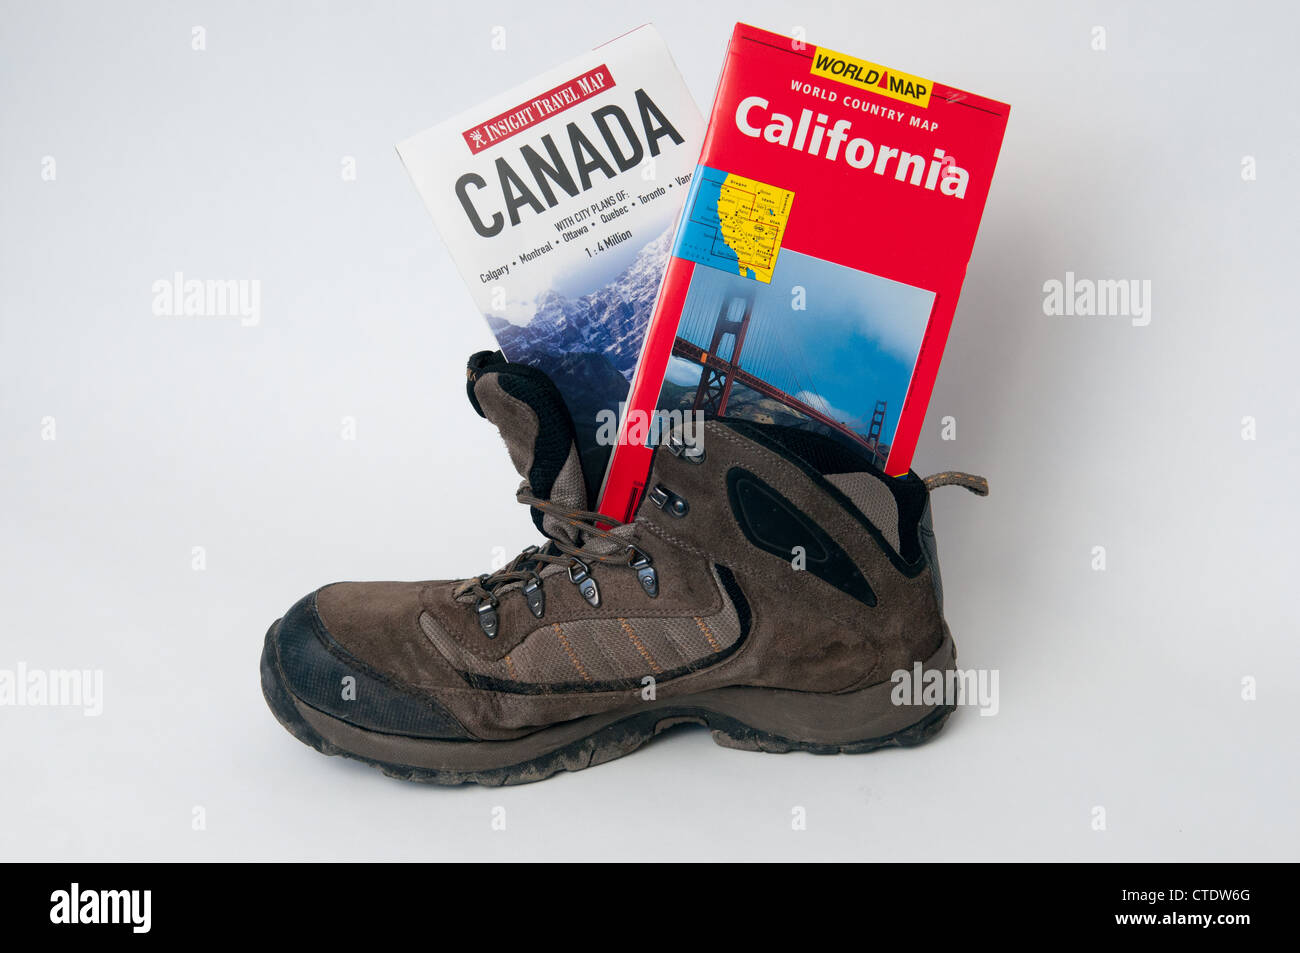 California maps stock photos california maps stock images alamy walking boot with canada and california maps stock image gumiabroncs Image collections